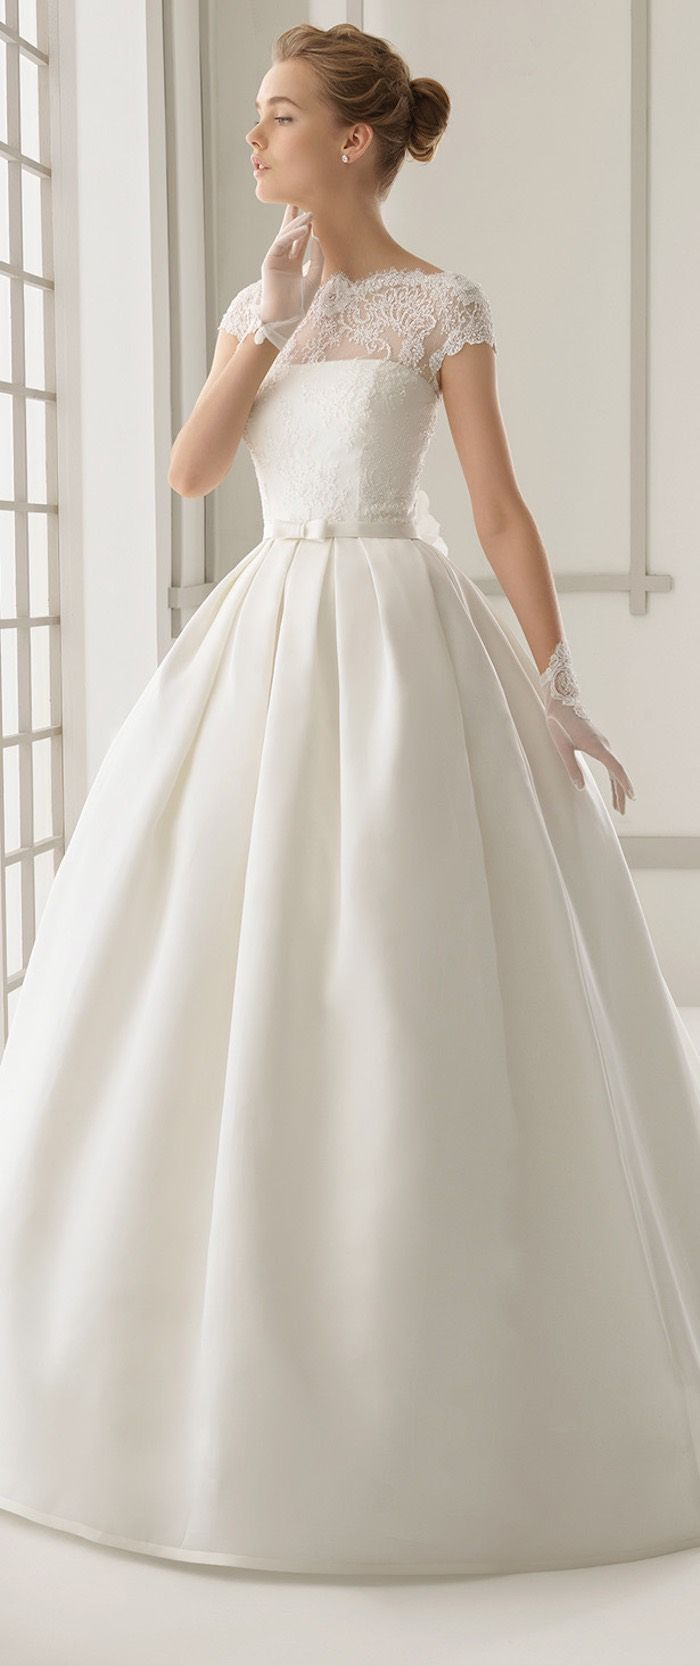 Best 20+ Modest wedding dresses ideas on Pinterest | Modest ...